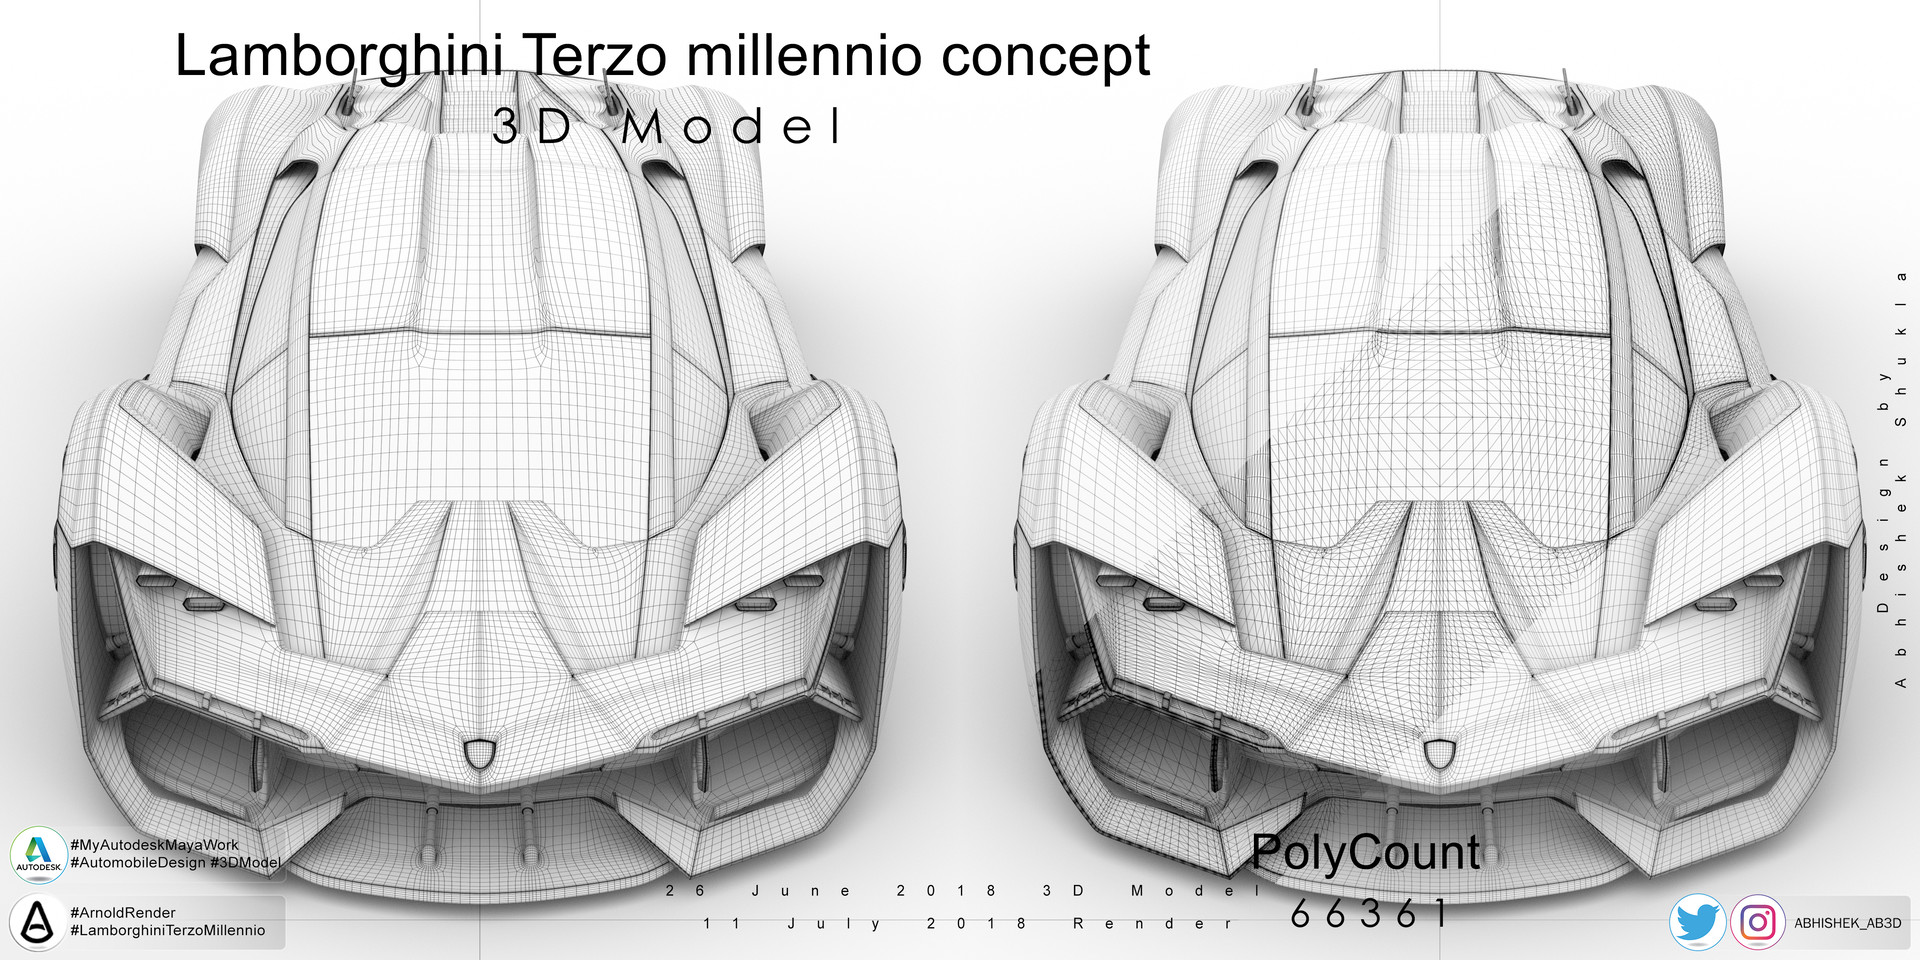 medium resolution of lamborghini terzo millennio 3d model front view as smooth polygon view with wireframe